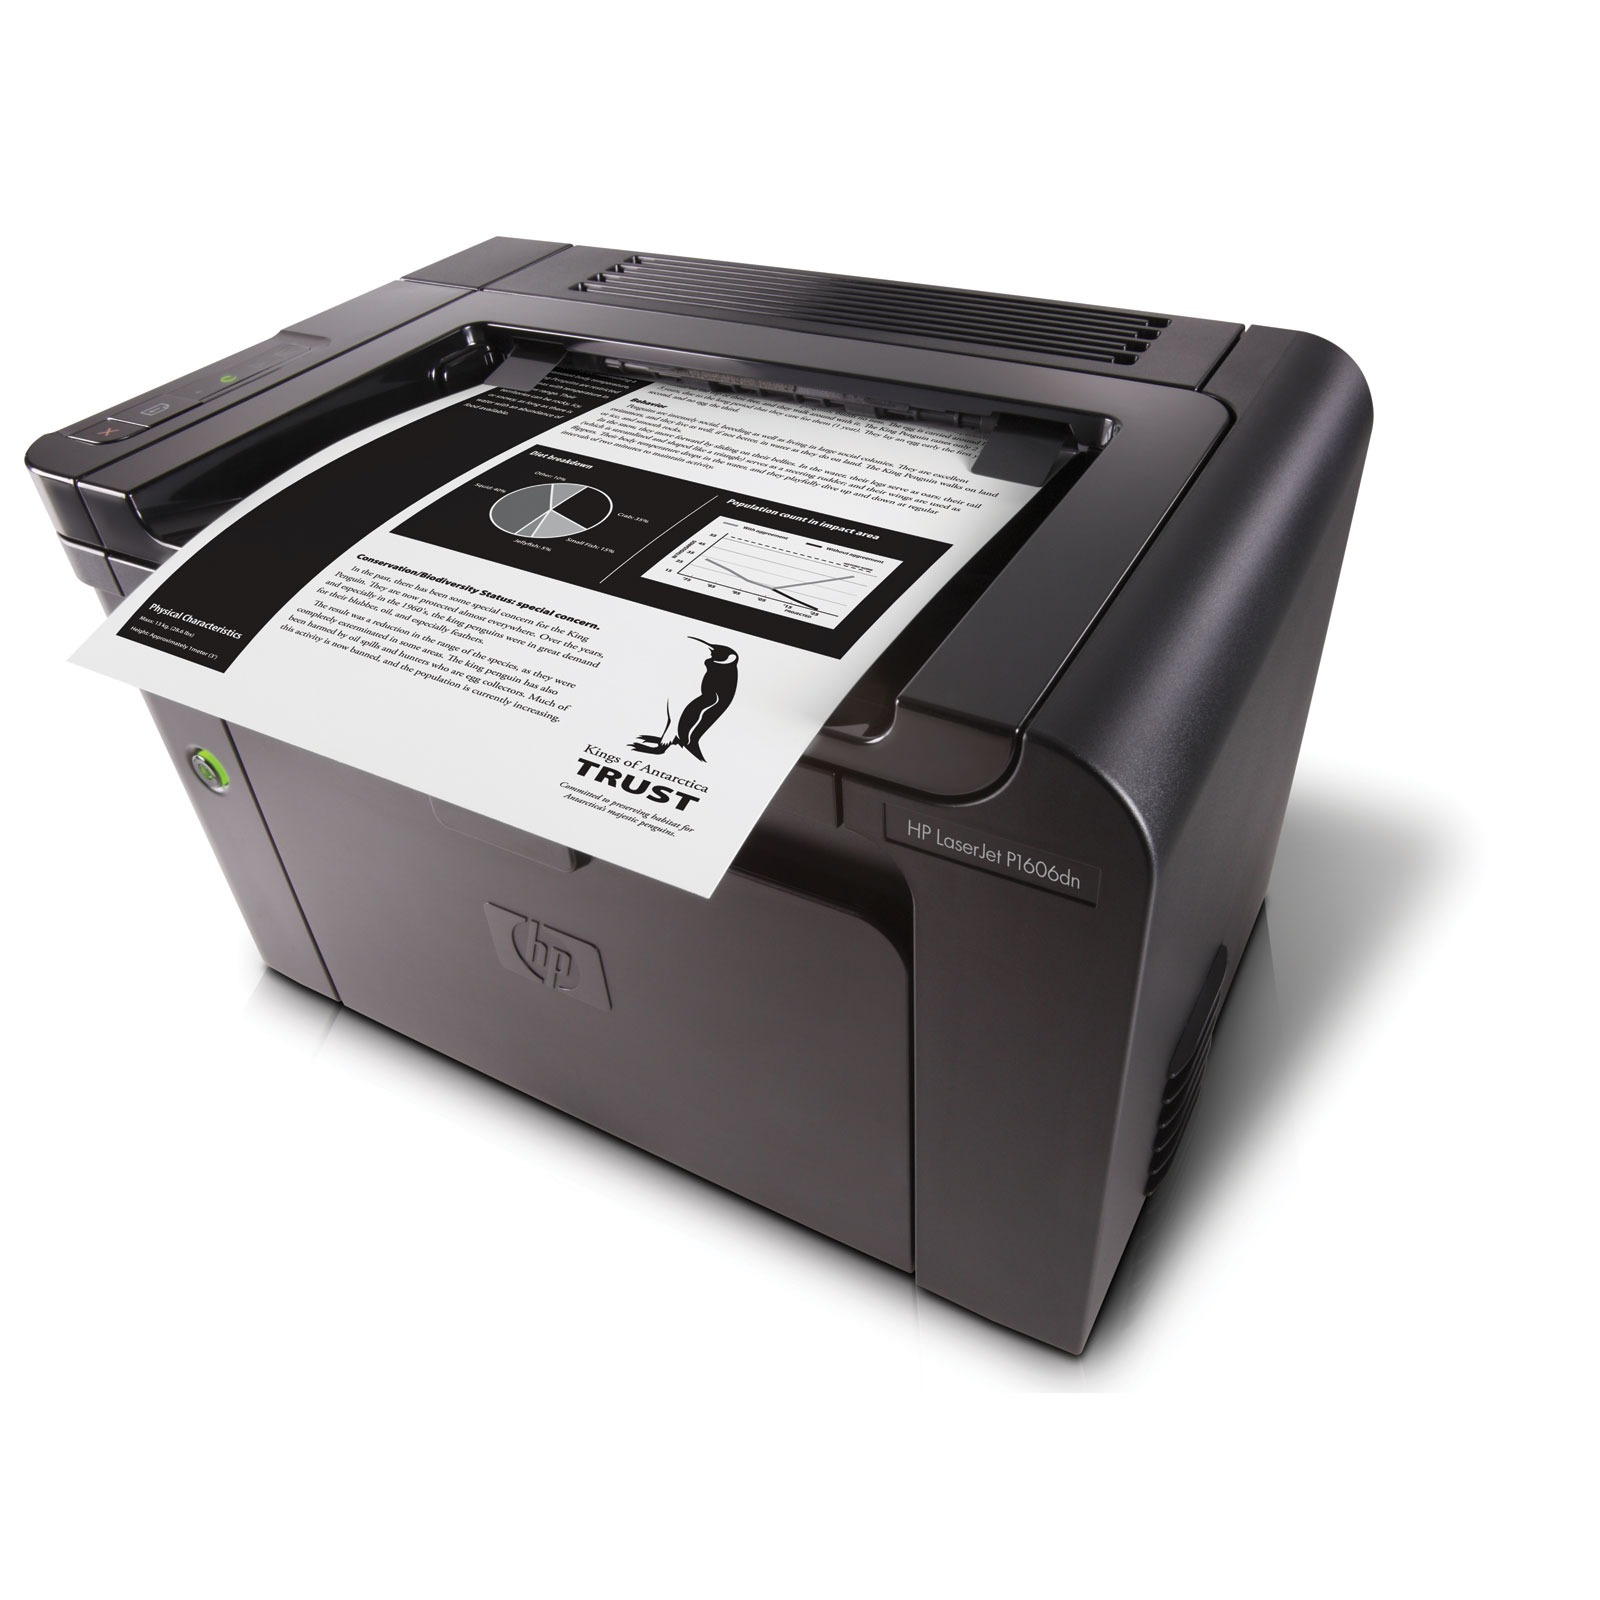 hp laserjet pro p1606dn imprimante laser hp sur. Black Bedroom Furniture Sets. Home Design Ideas